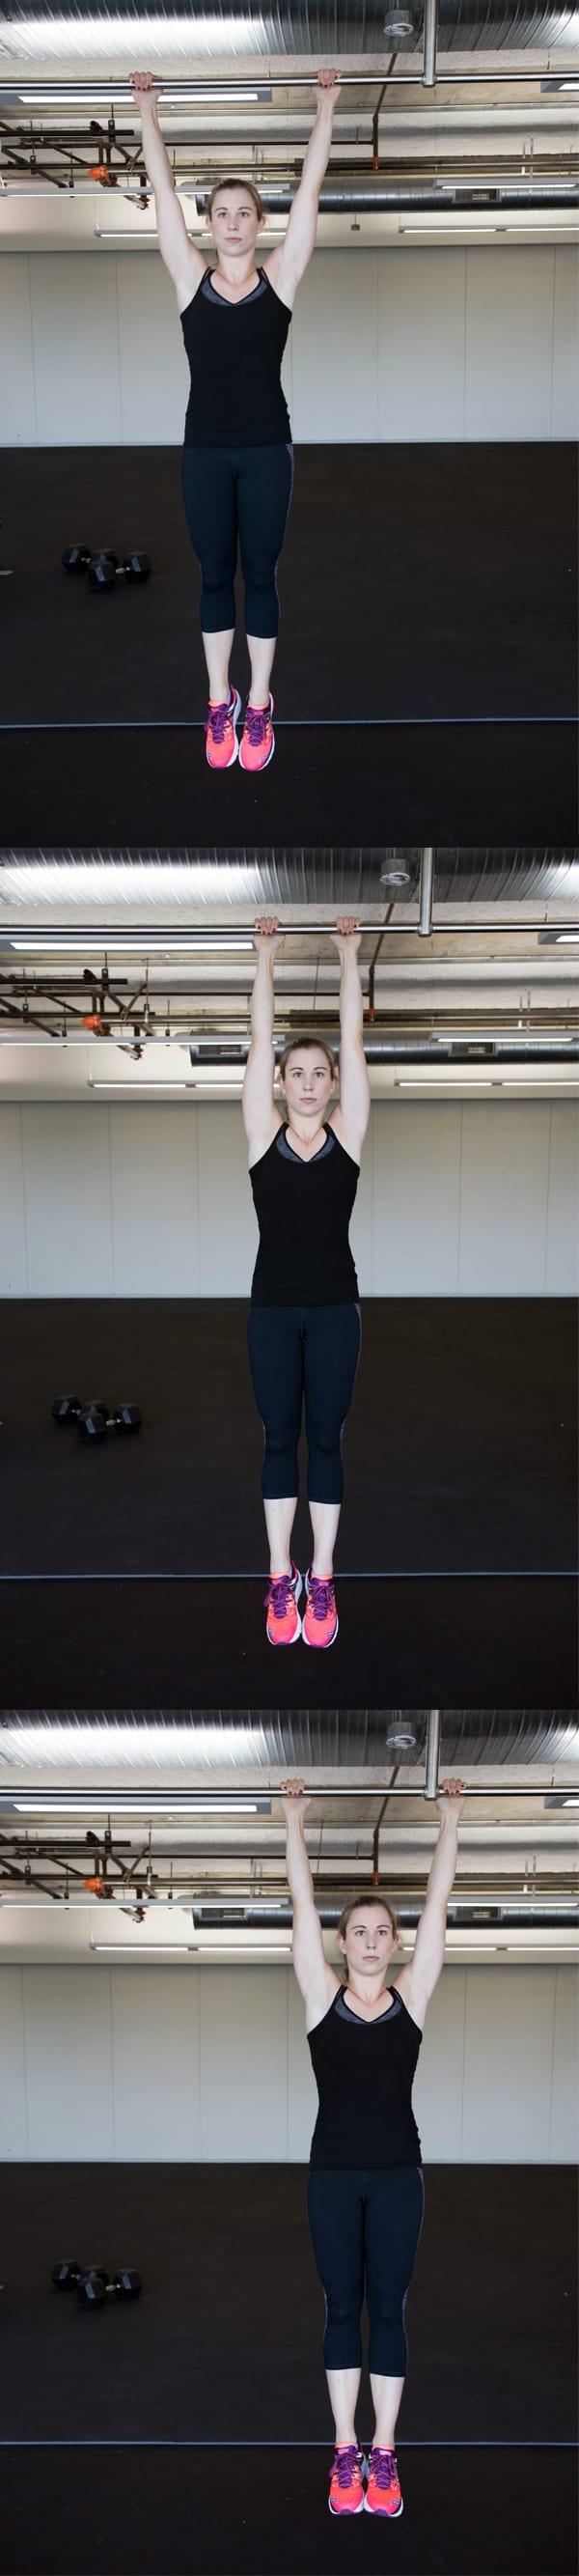 Get Arms Like A Gymnast With These 4 Exercises The